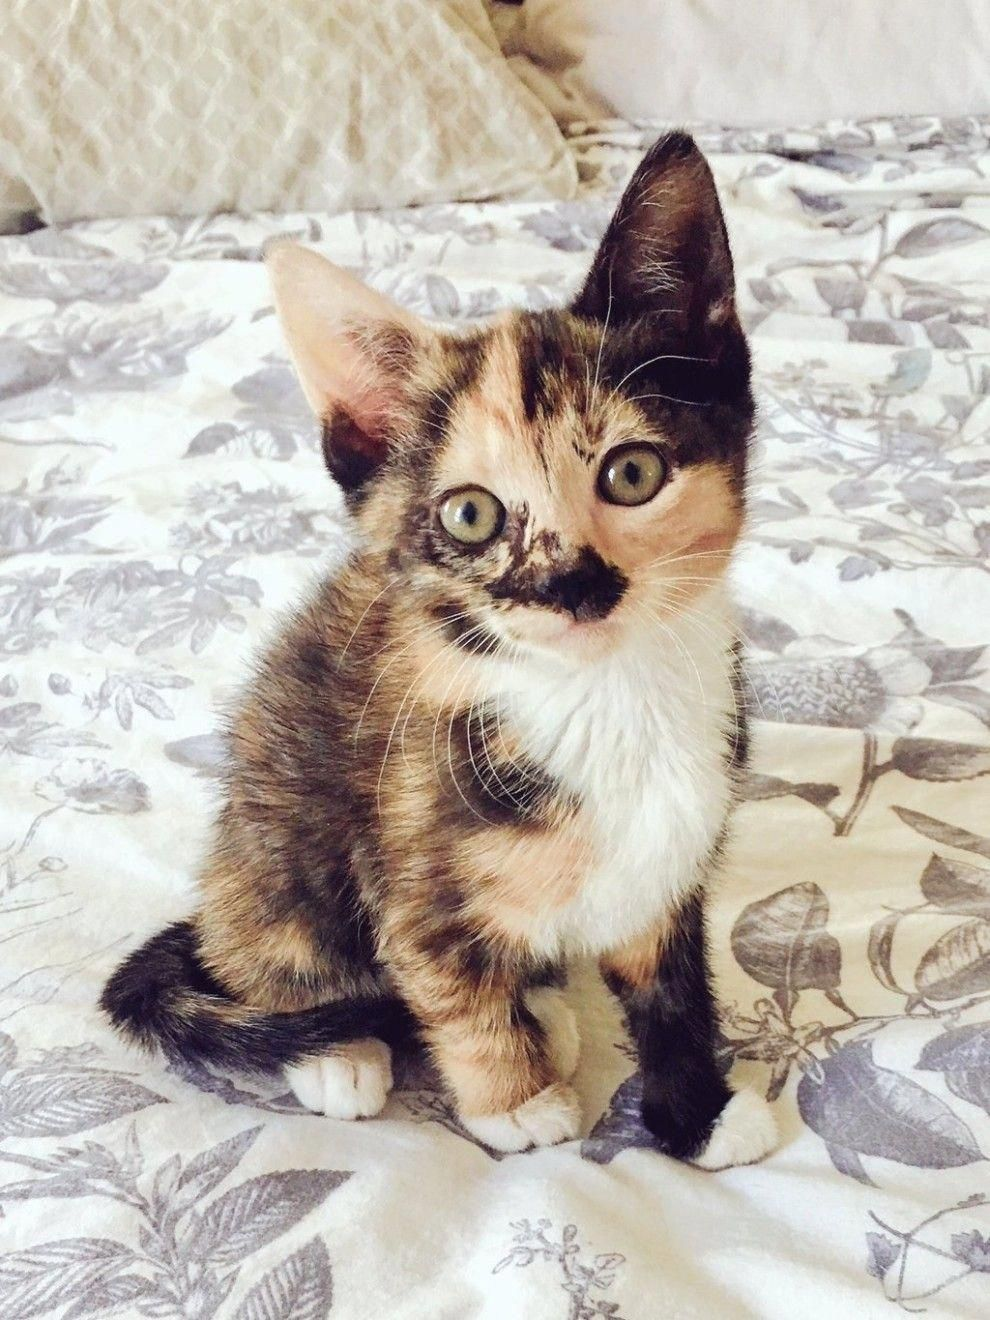 28 Of The Most Ridiculously Cute Kittens Of 2016 Tap The Link Now All Things Cats Treat Yourself And Your Ca Kittens Cutest Pretty Cats Cute Baby Animals